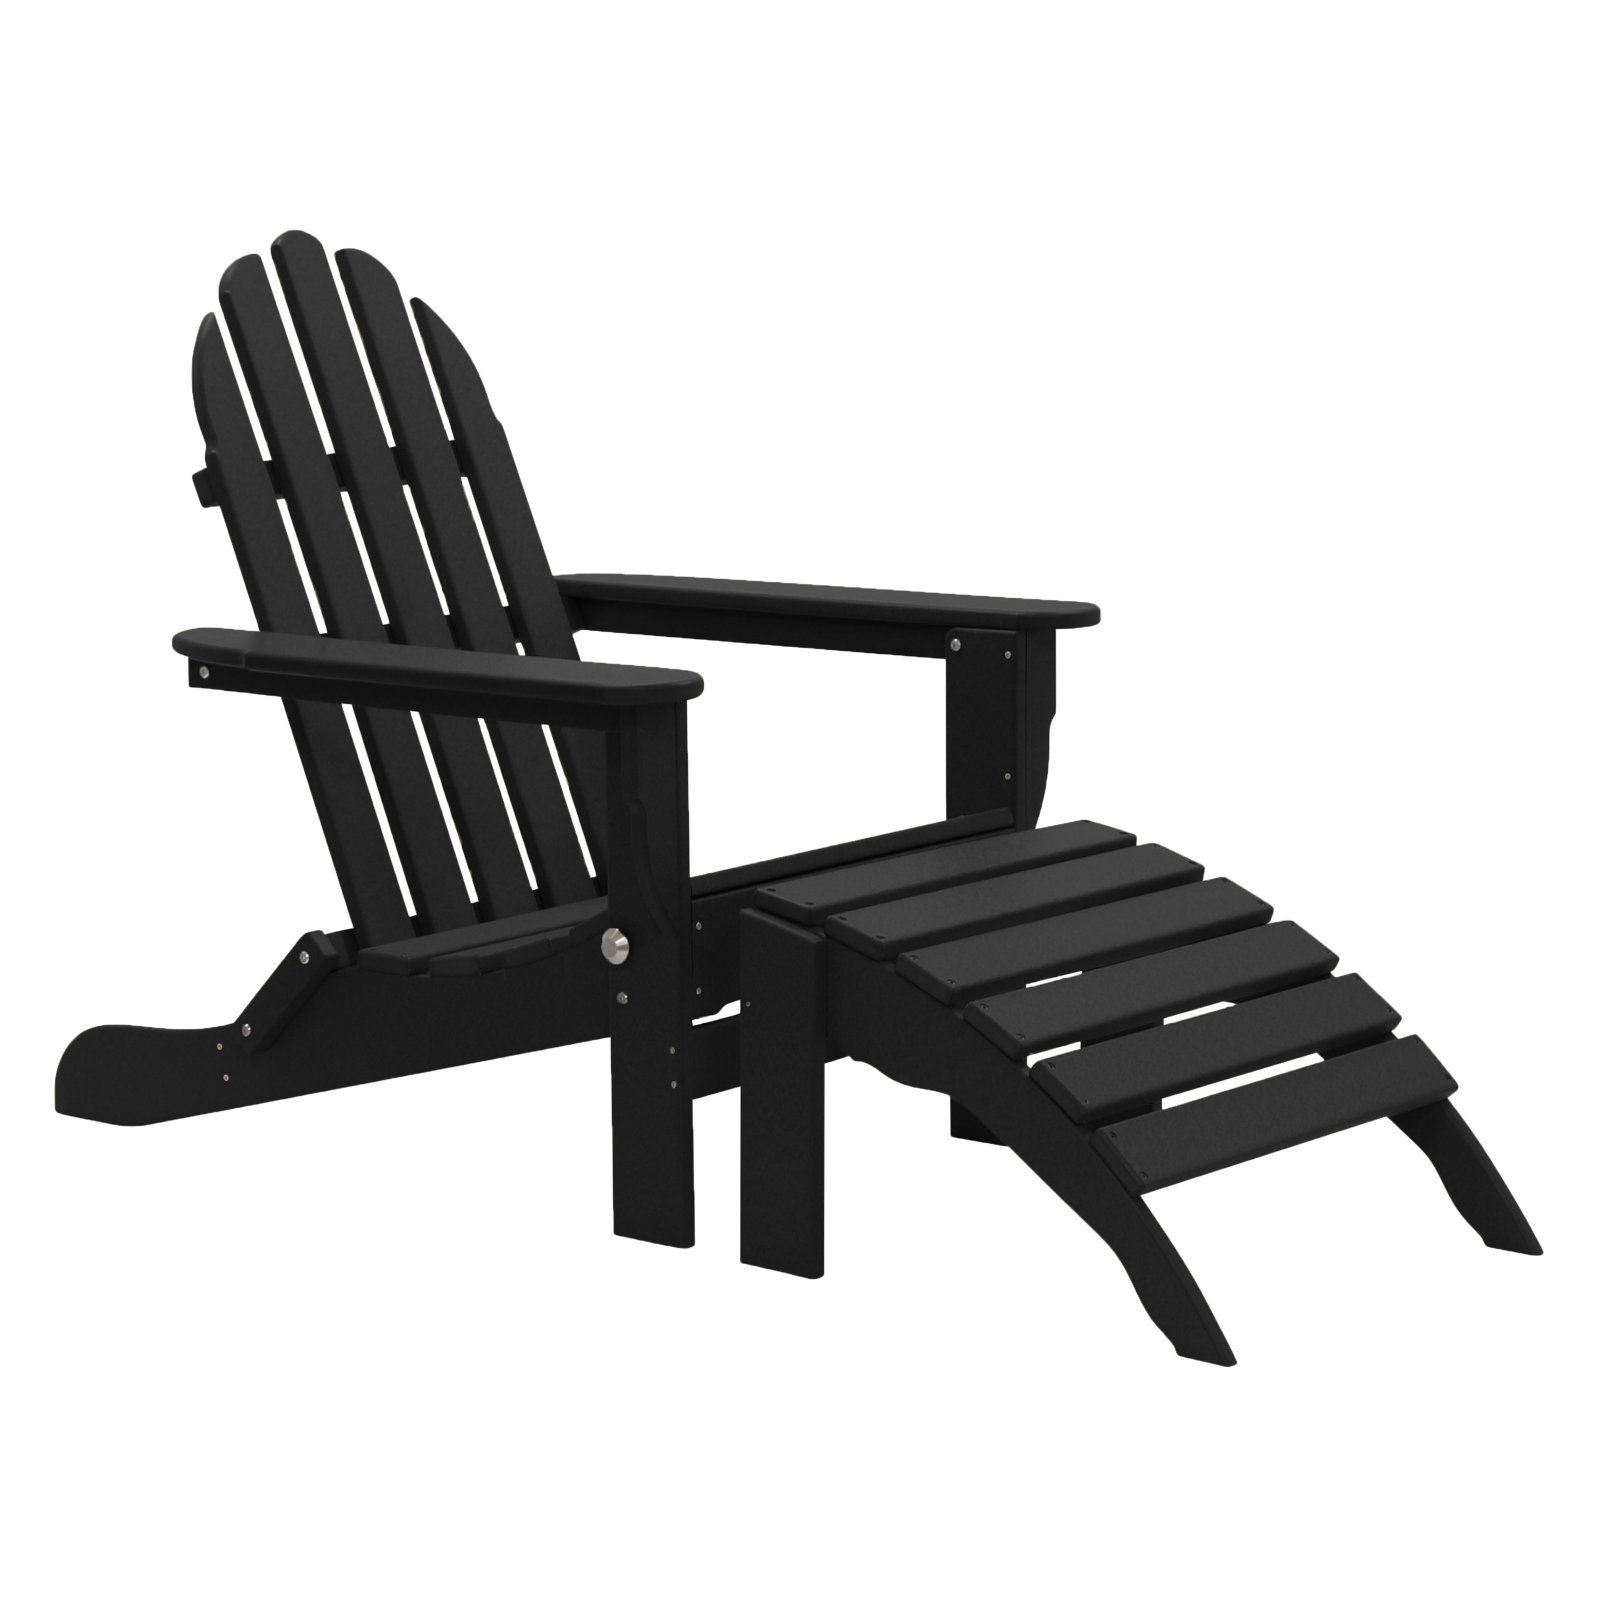 Outdoor Durogreen Recycled Plastic 2 Piece The Adirondack Chair